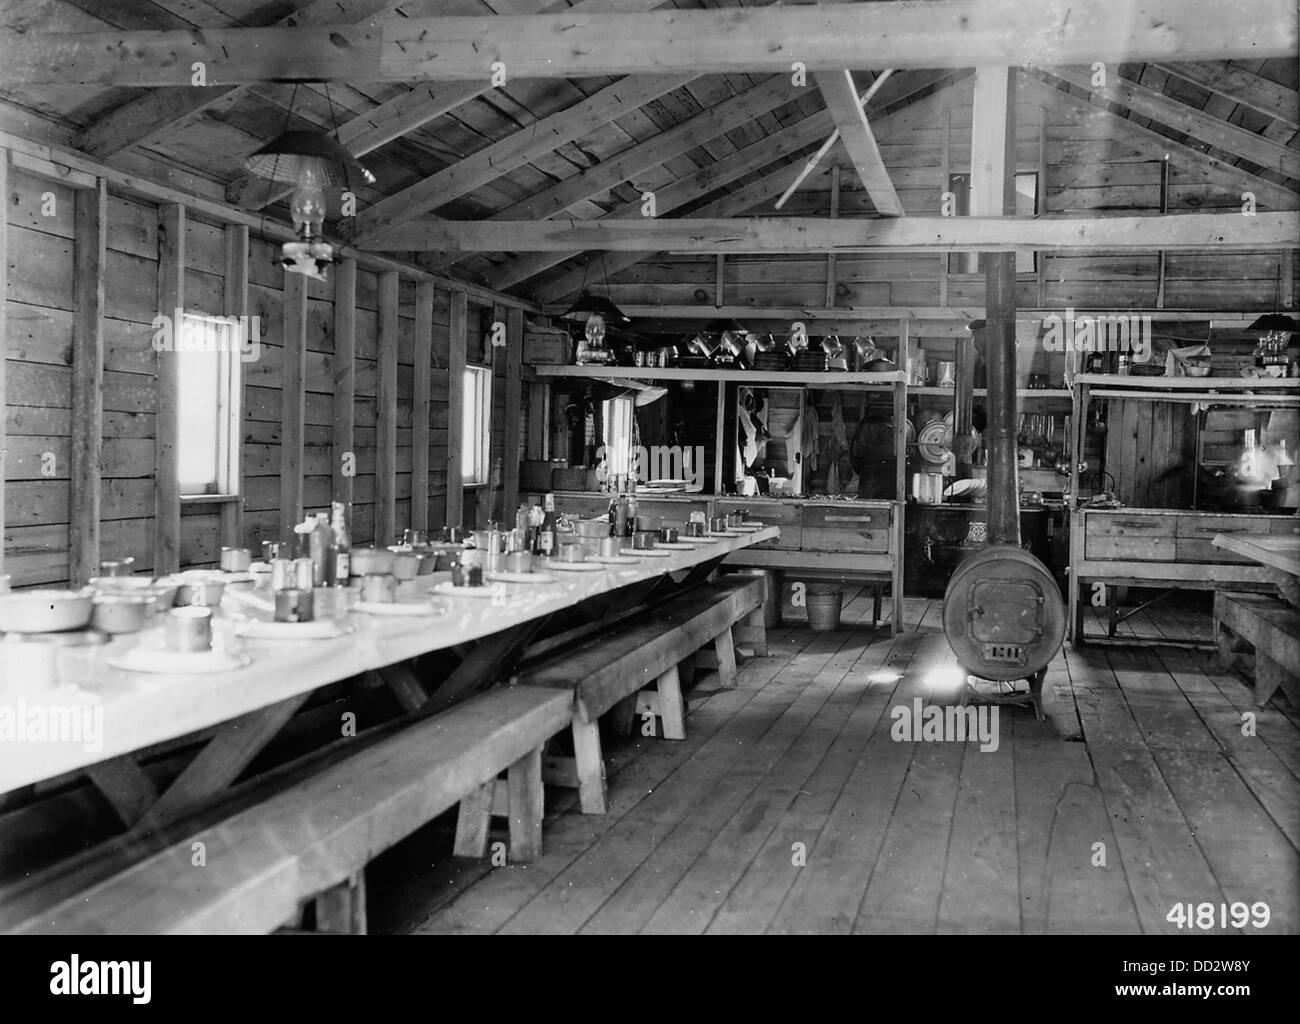 Mess Hall at a Logging Camp - - 2129369 - Stock Image